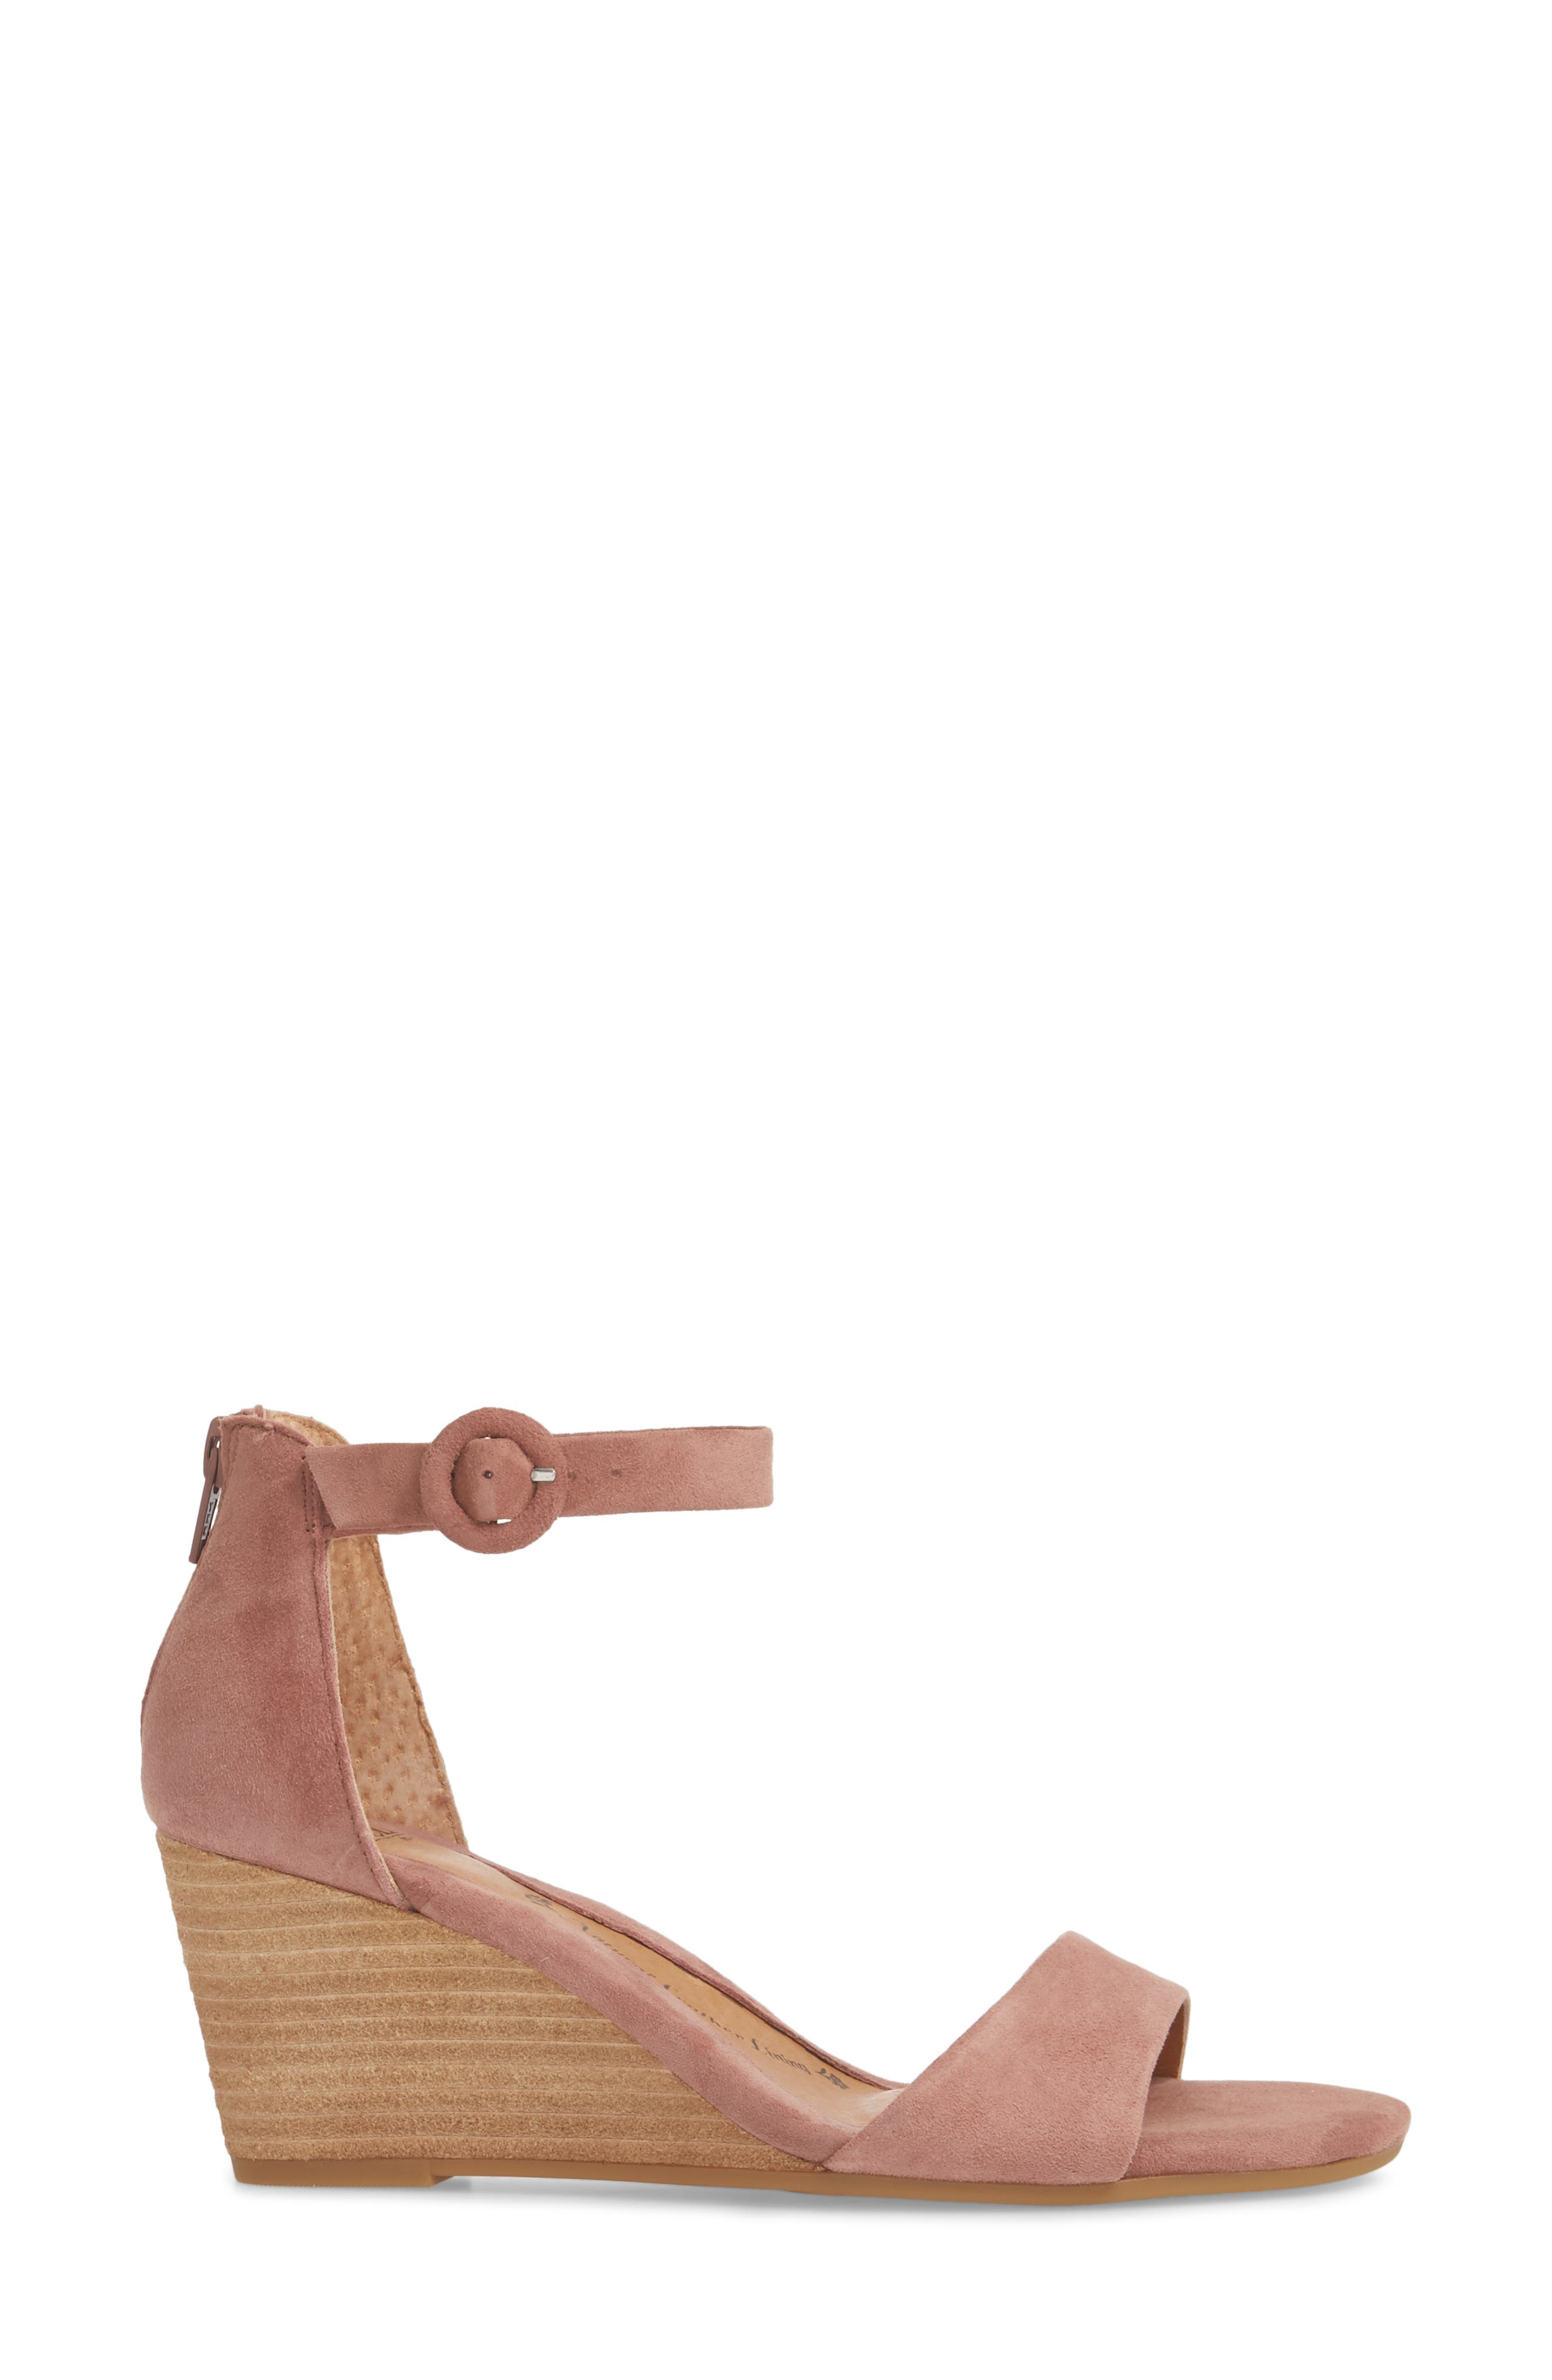 Marla Wedge Sandal,                             Alternate thumbnail 3, color,                             MULBERRY SUEDE